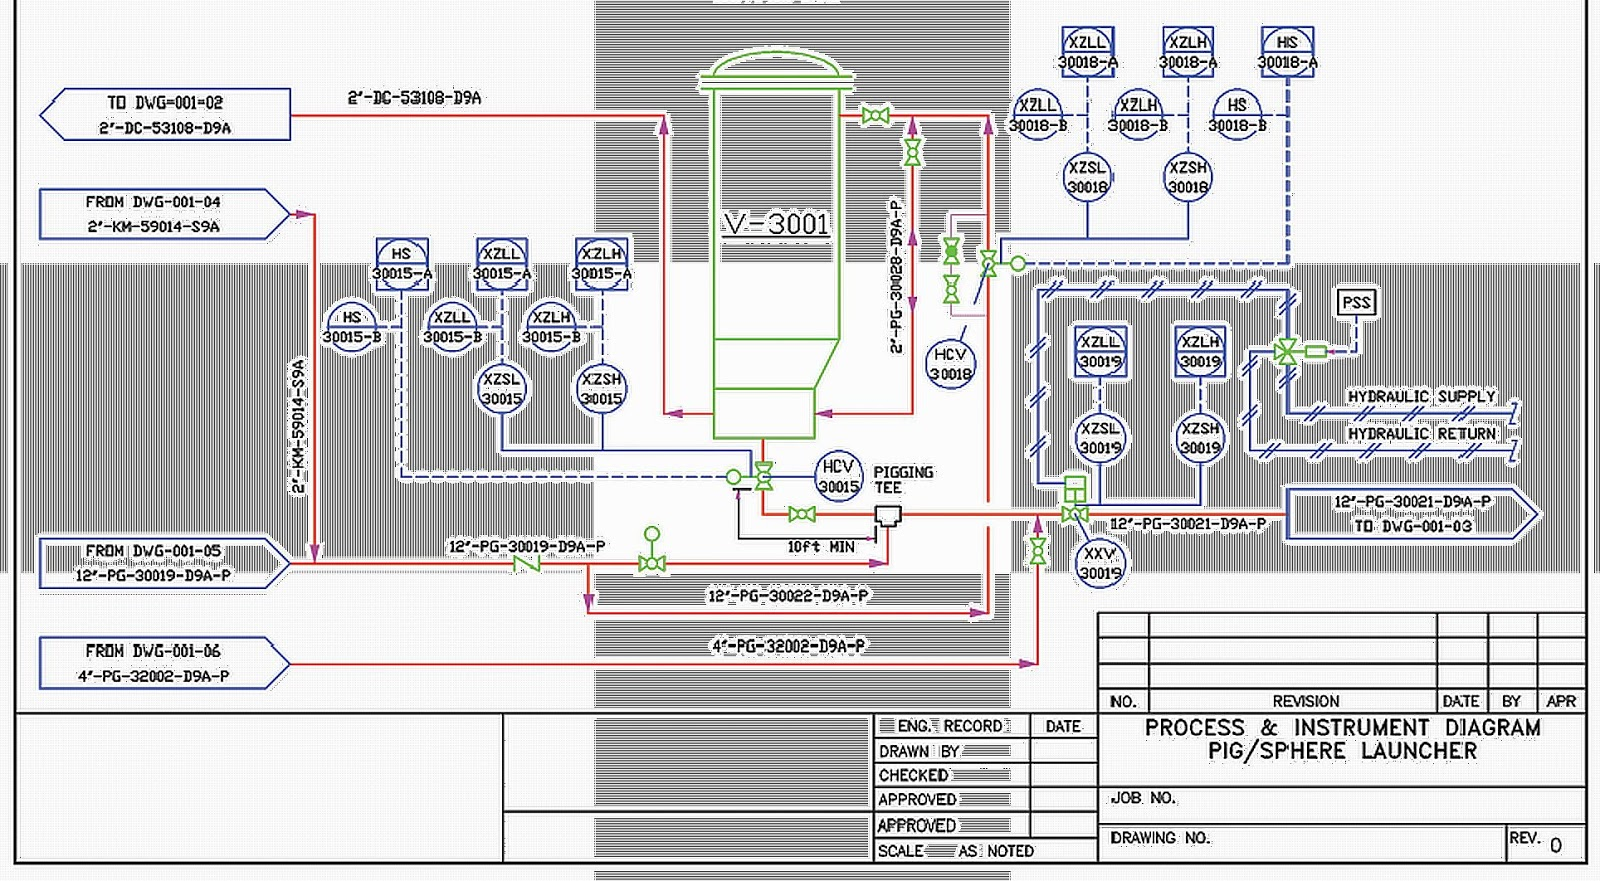 p id p id process diagram piping  [ 1600 x 881 Pixel ]